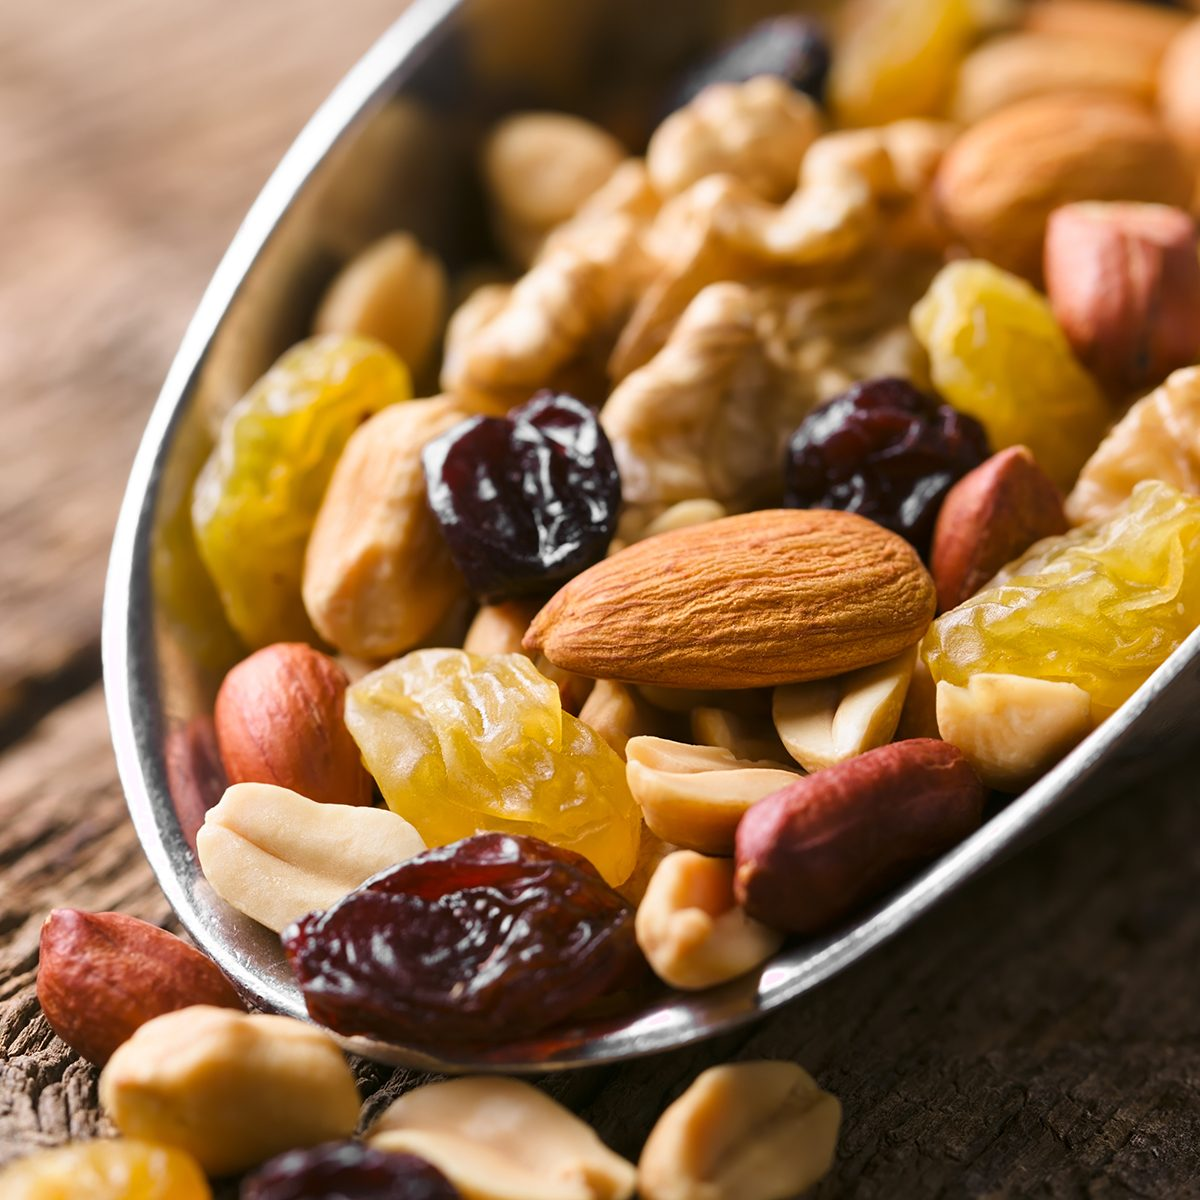 Healthy trail mix snack made of nuts (walnut, almond, peanut) and dried fruits (raisin, sultana) on iron scoop